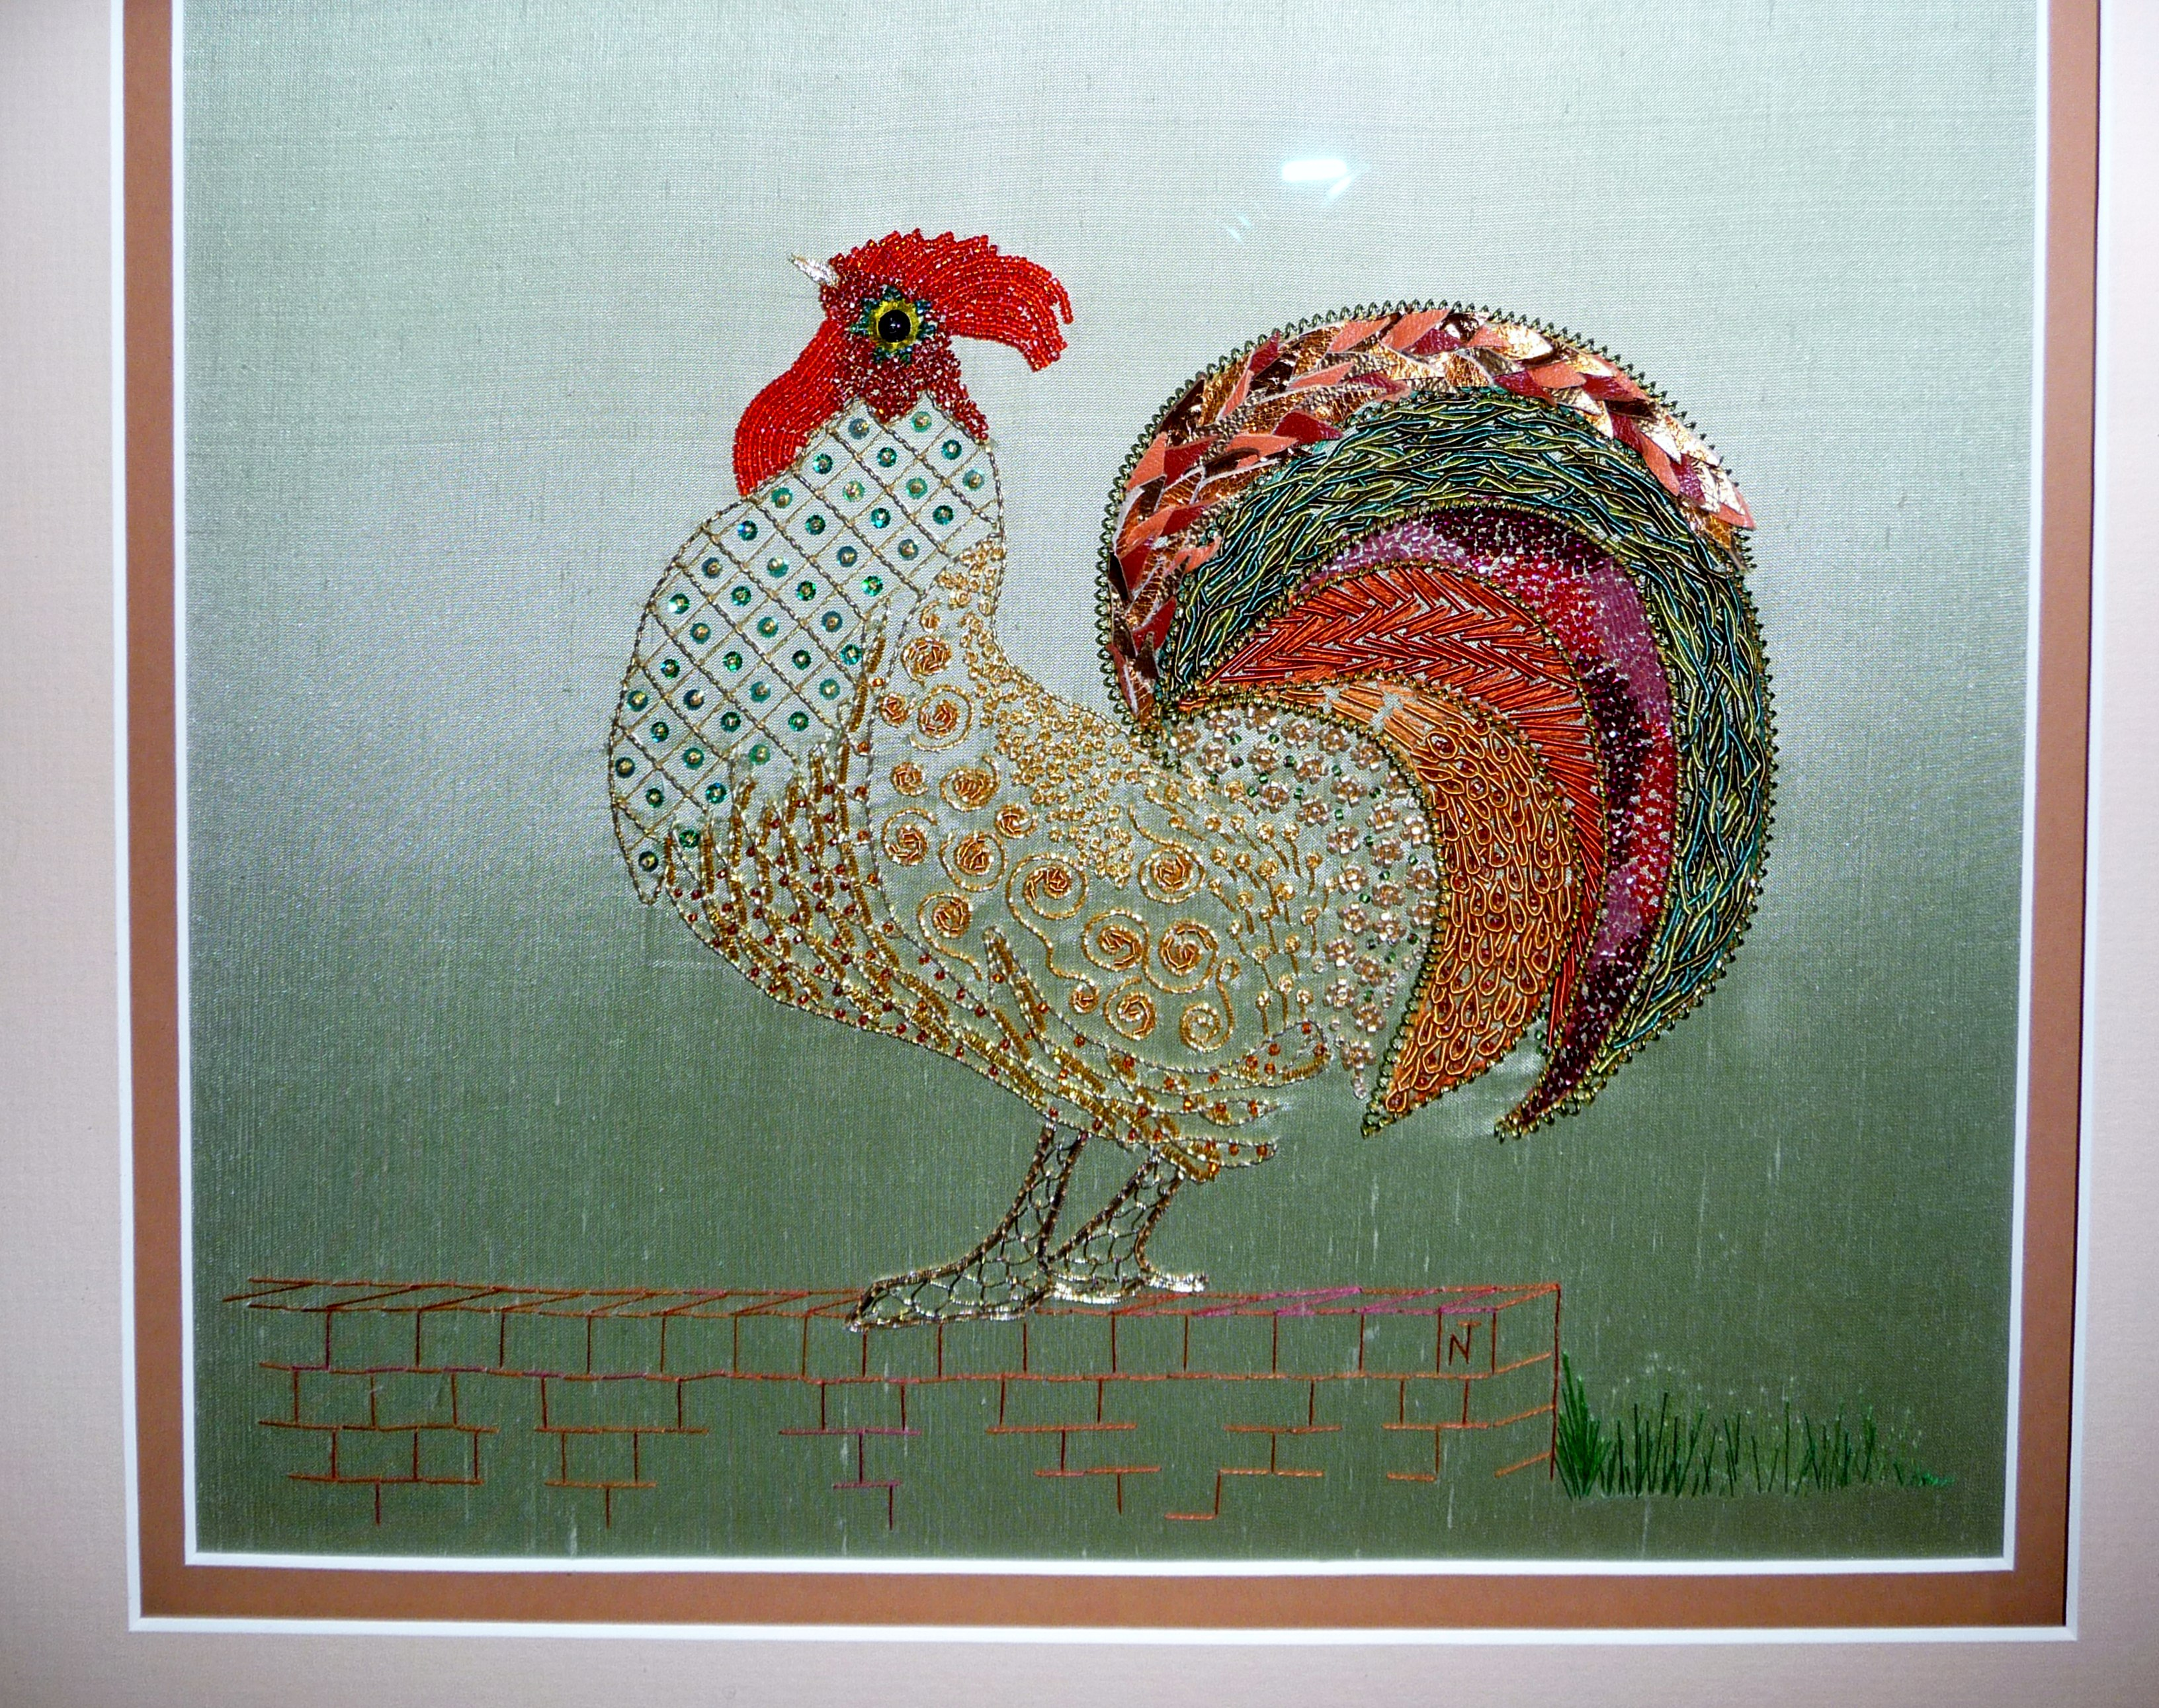 COCKERAL by Norma Tanswell, goldwork